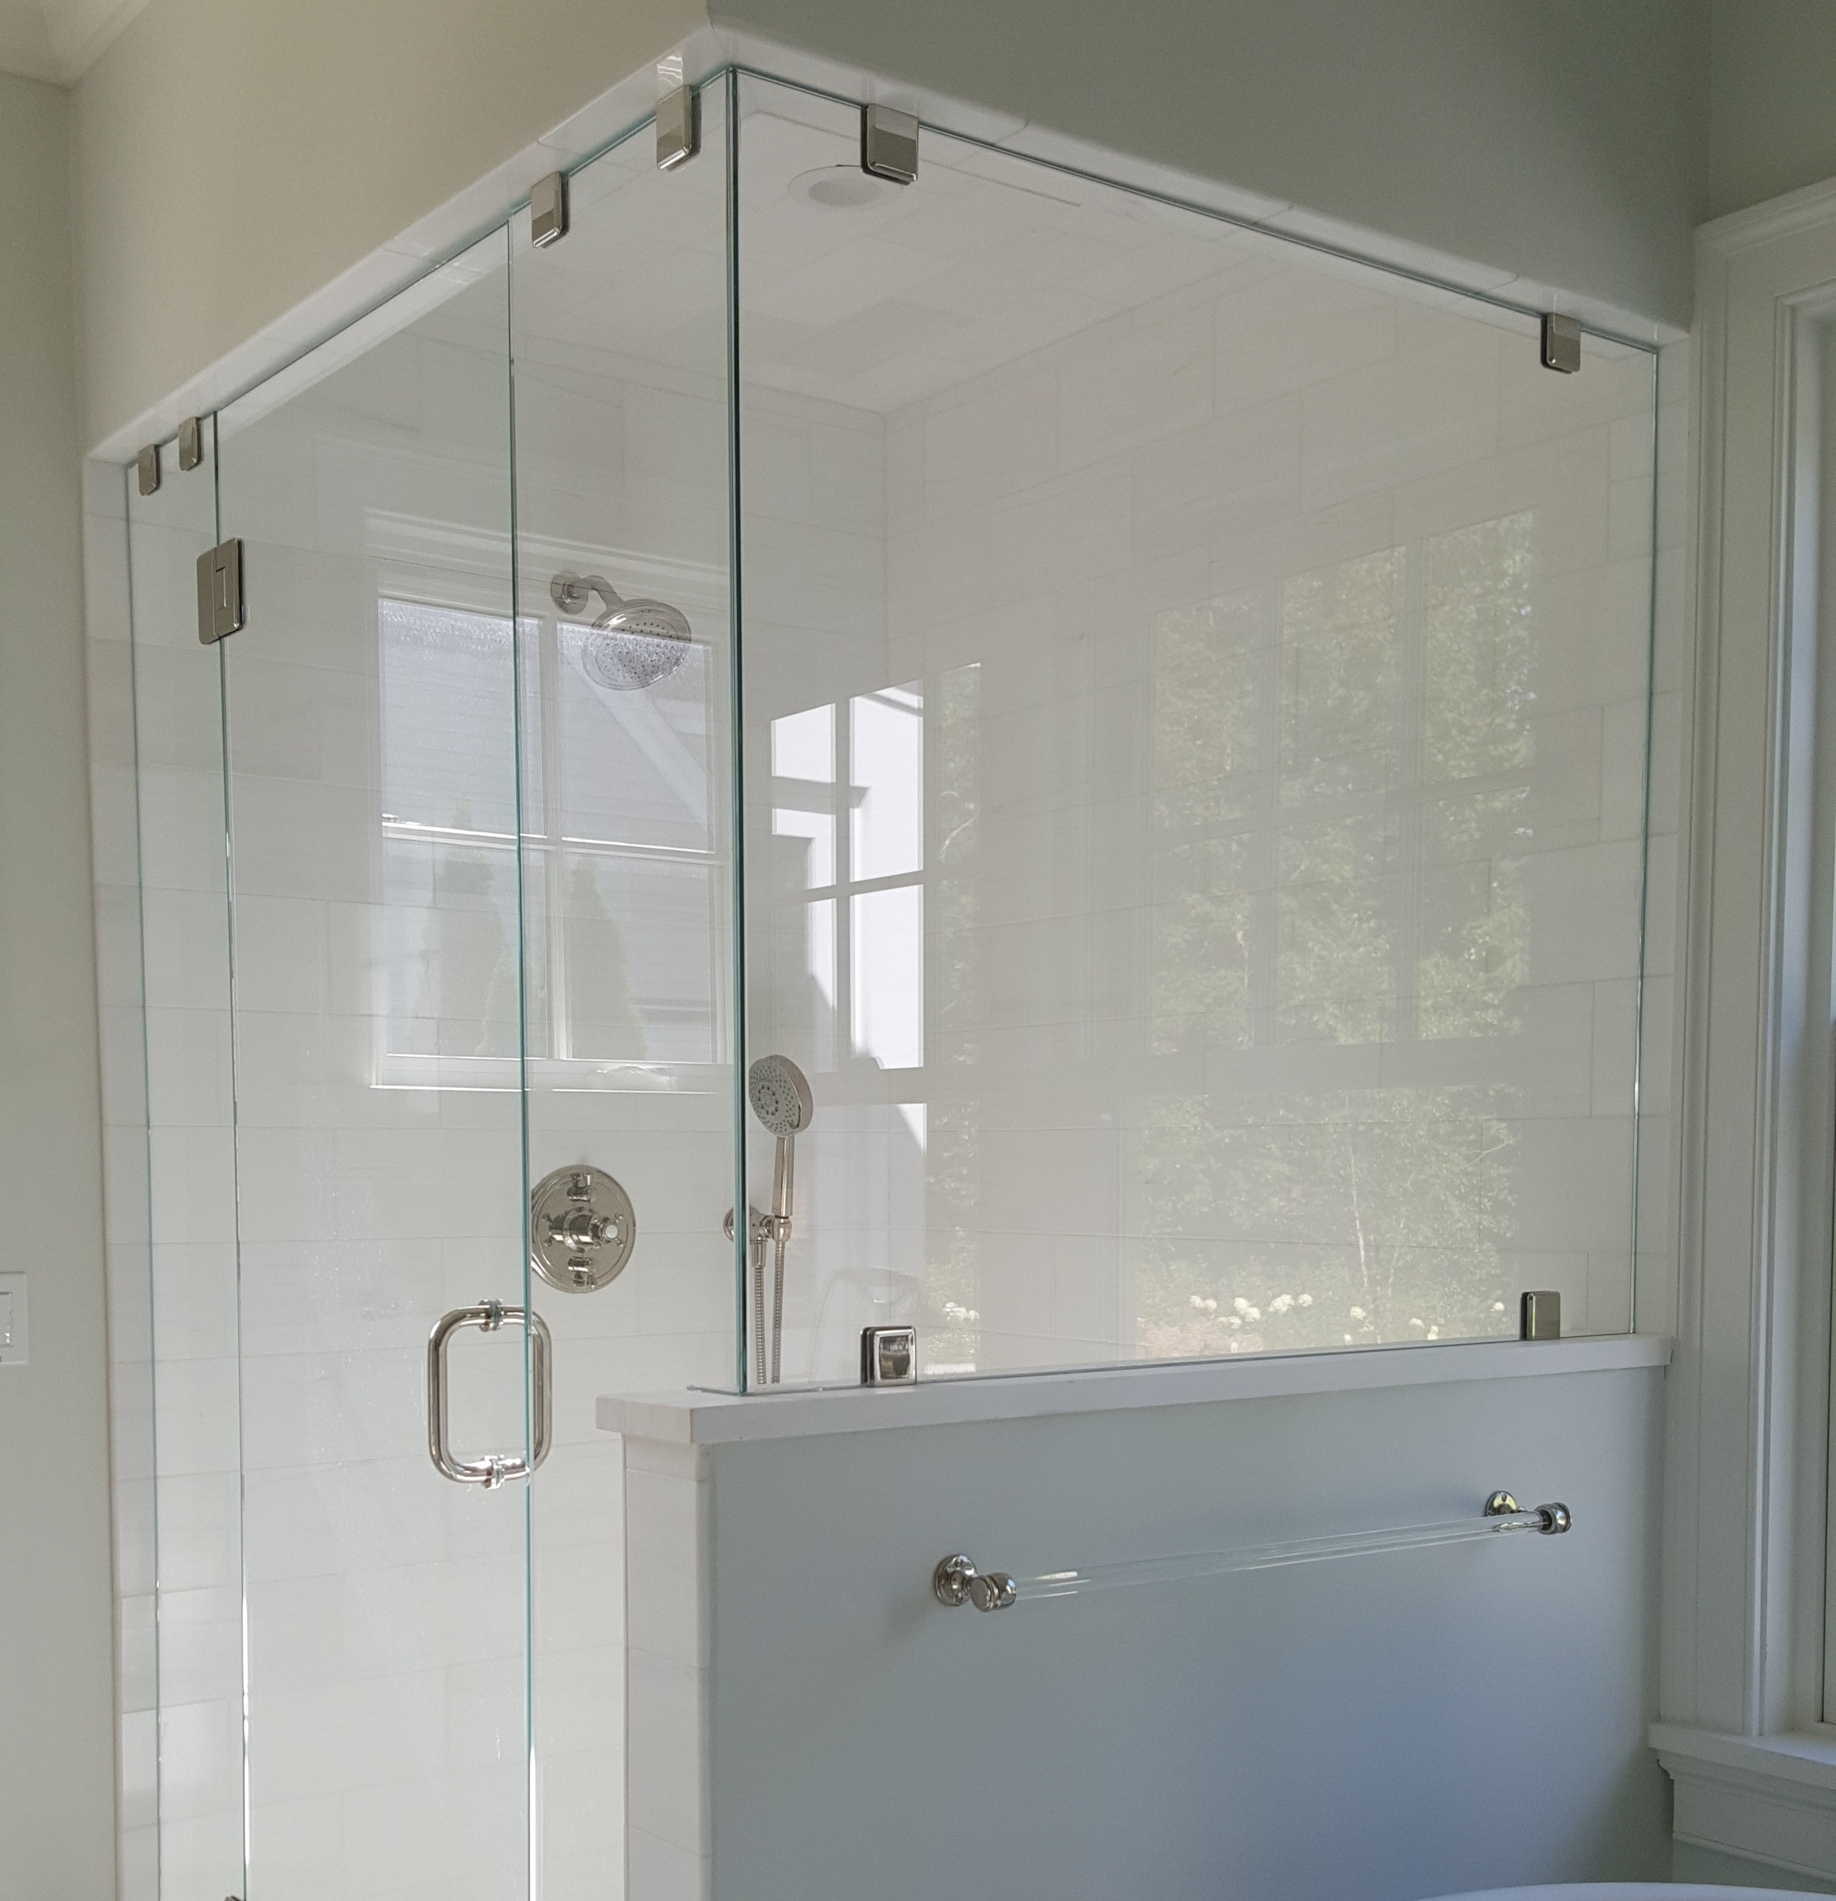 Frameless glass shower enclosures - Residential and Commercial Glass on the Vineyard, from Dukes County Glass & MirrorAre you looking to add beauty and elegance to your home? Dukes County Glass & Mirror is your answer for all your residential glass needs throughout the Martha's Vineyard island. Our glass company began by building mirrors and shower doors more than 3 years ago. Our focus is on high-quality products and expert craftsmanship, enabling us to bring elements of luxury into homes and making us the perfect fit for your glass installations.